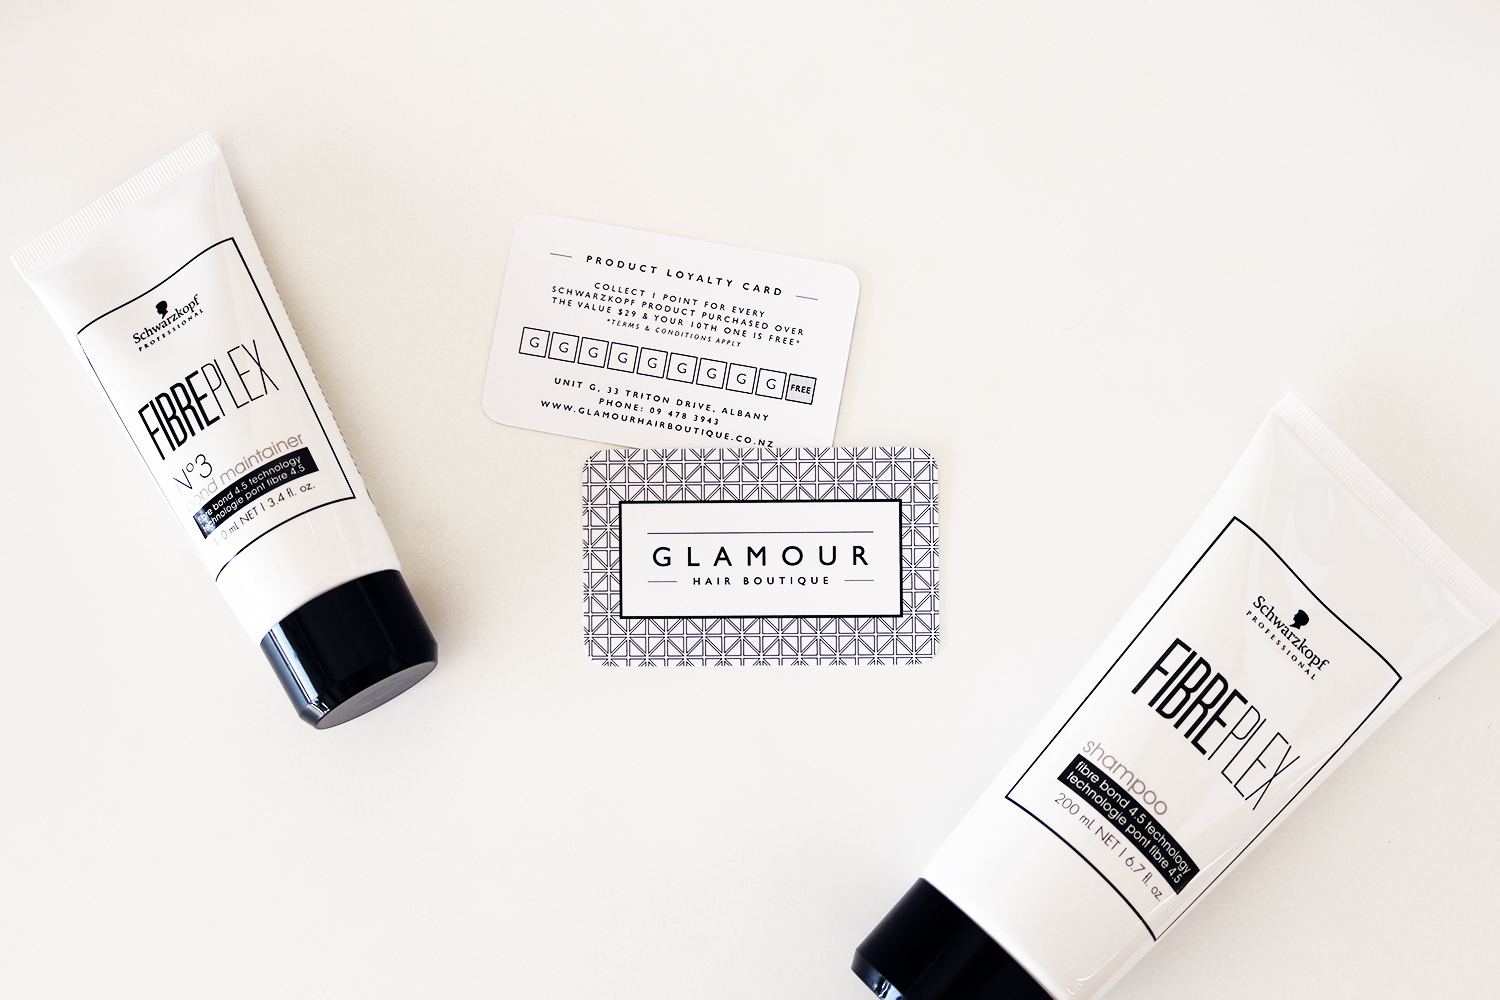 Glamour Hair Boutique Product Loyalty Cards